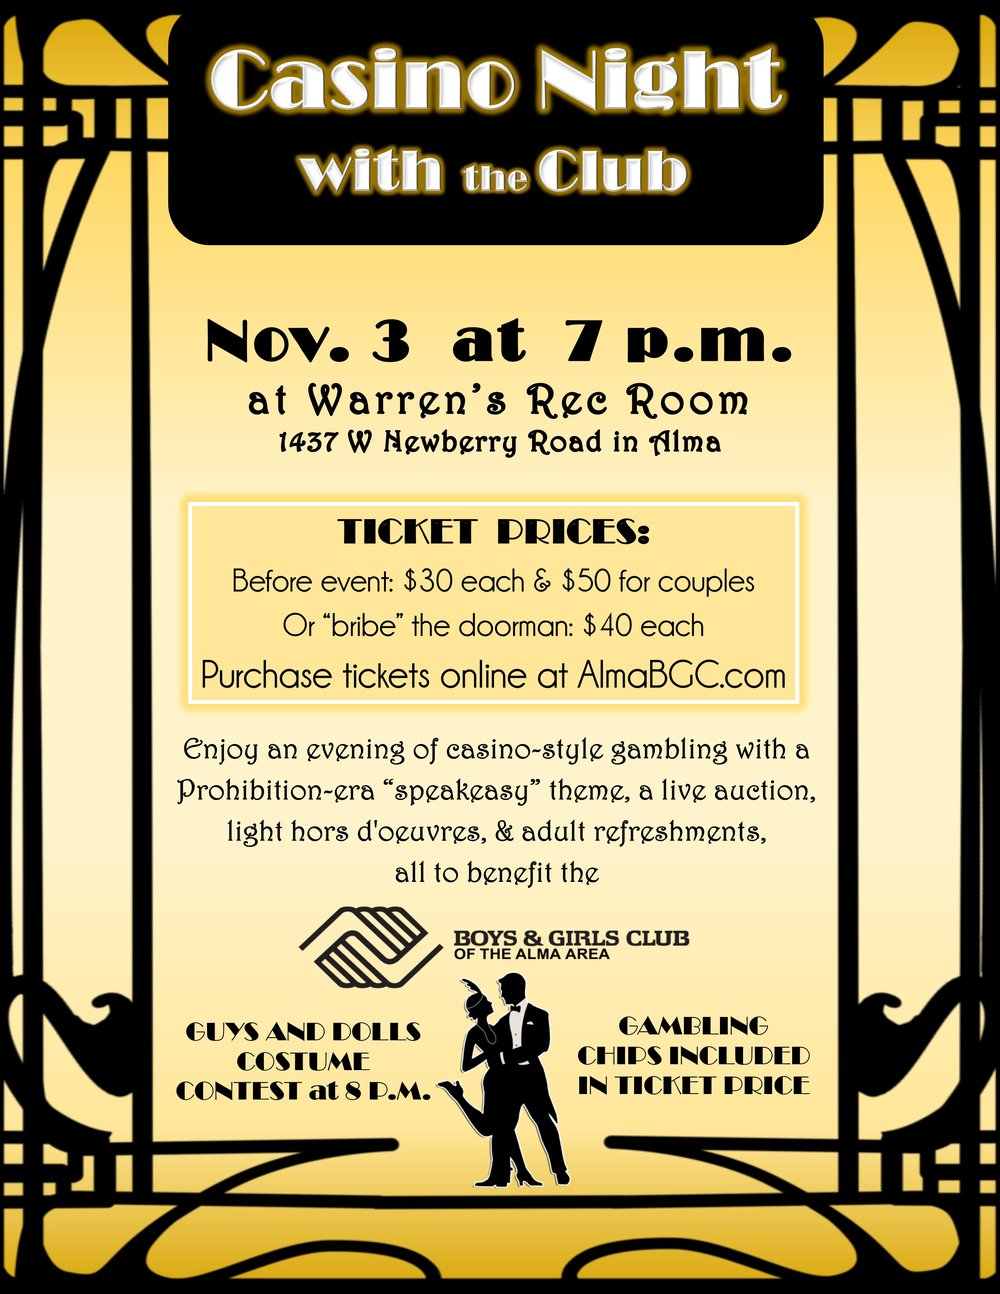 casino night final flyer.jpg